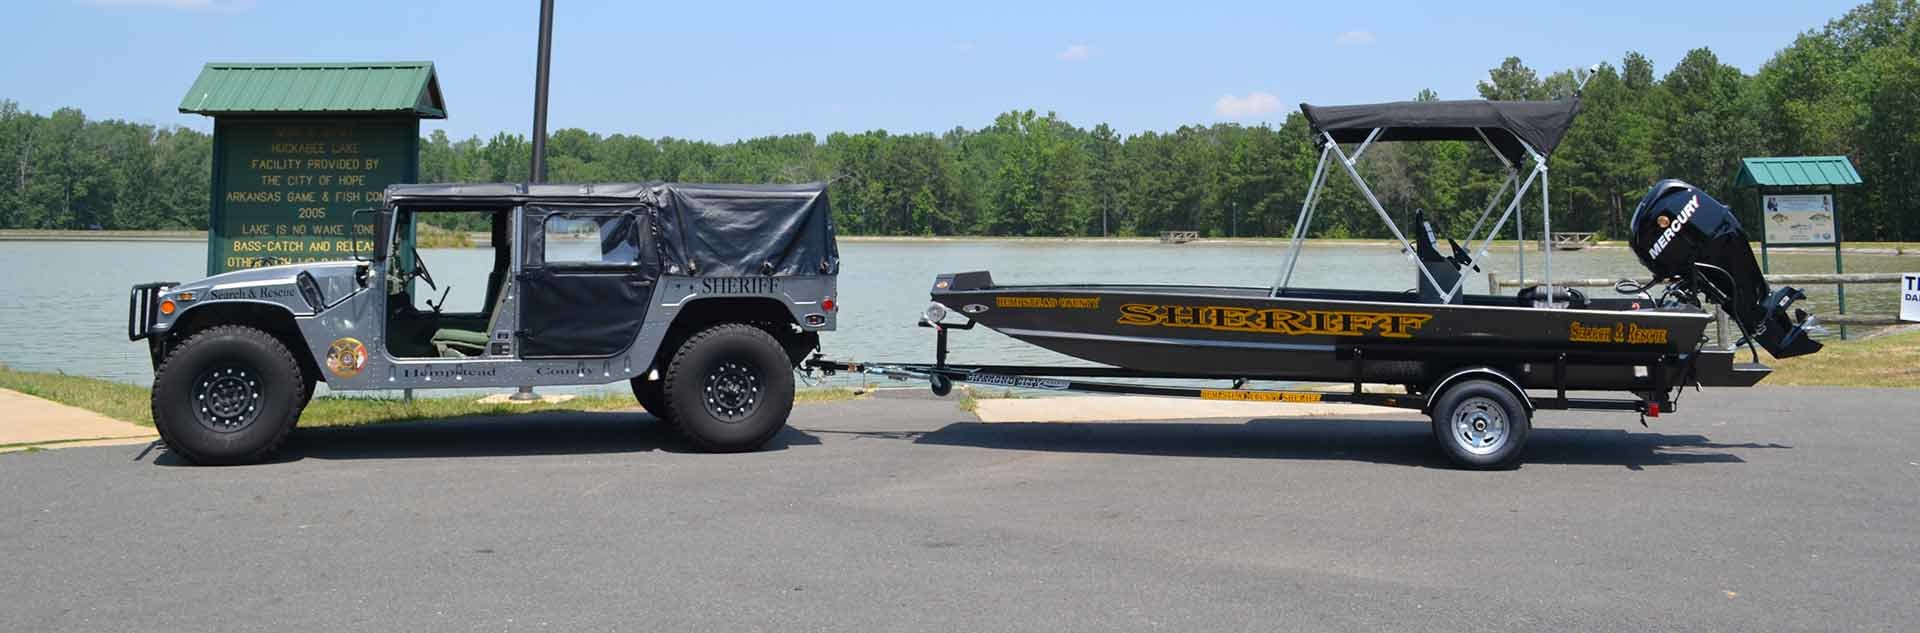 Sheriff Jeep and Boat